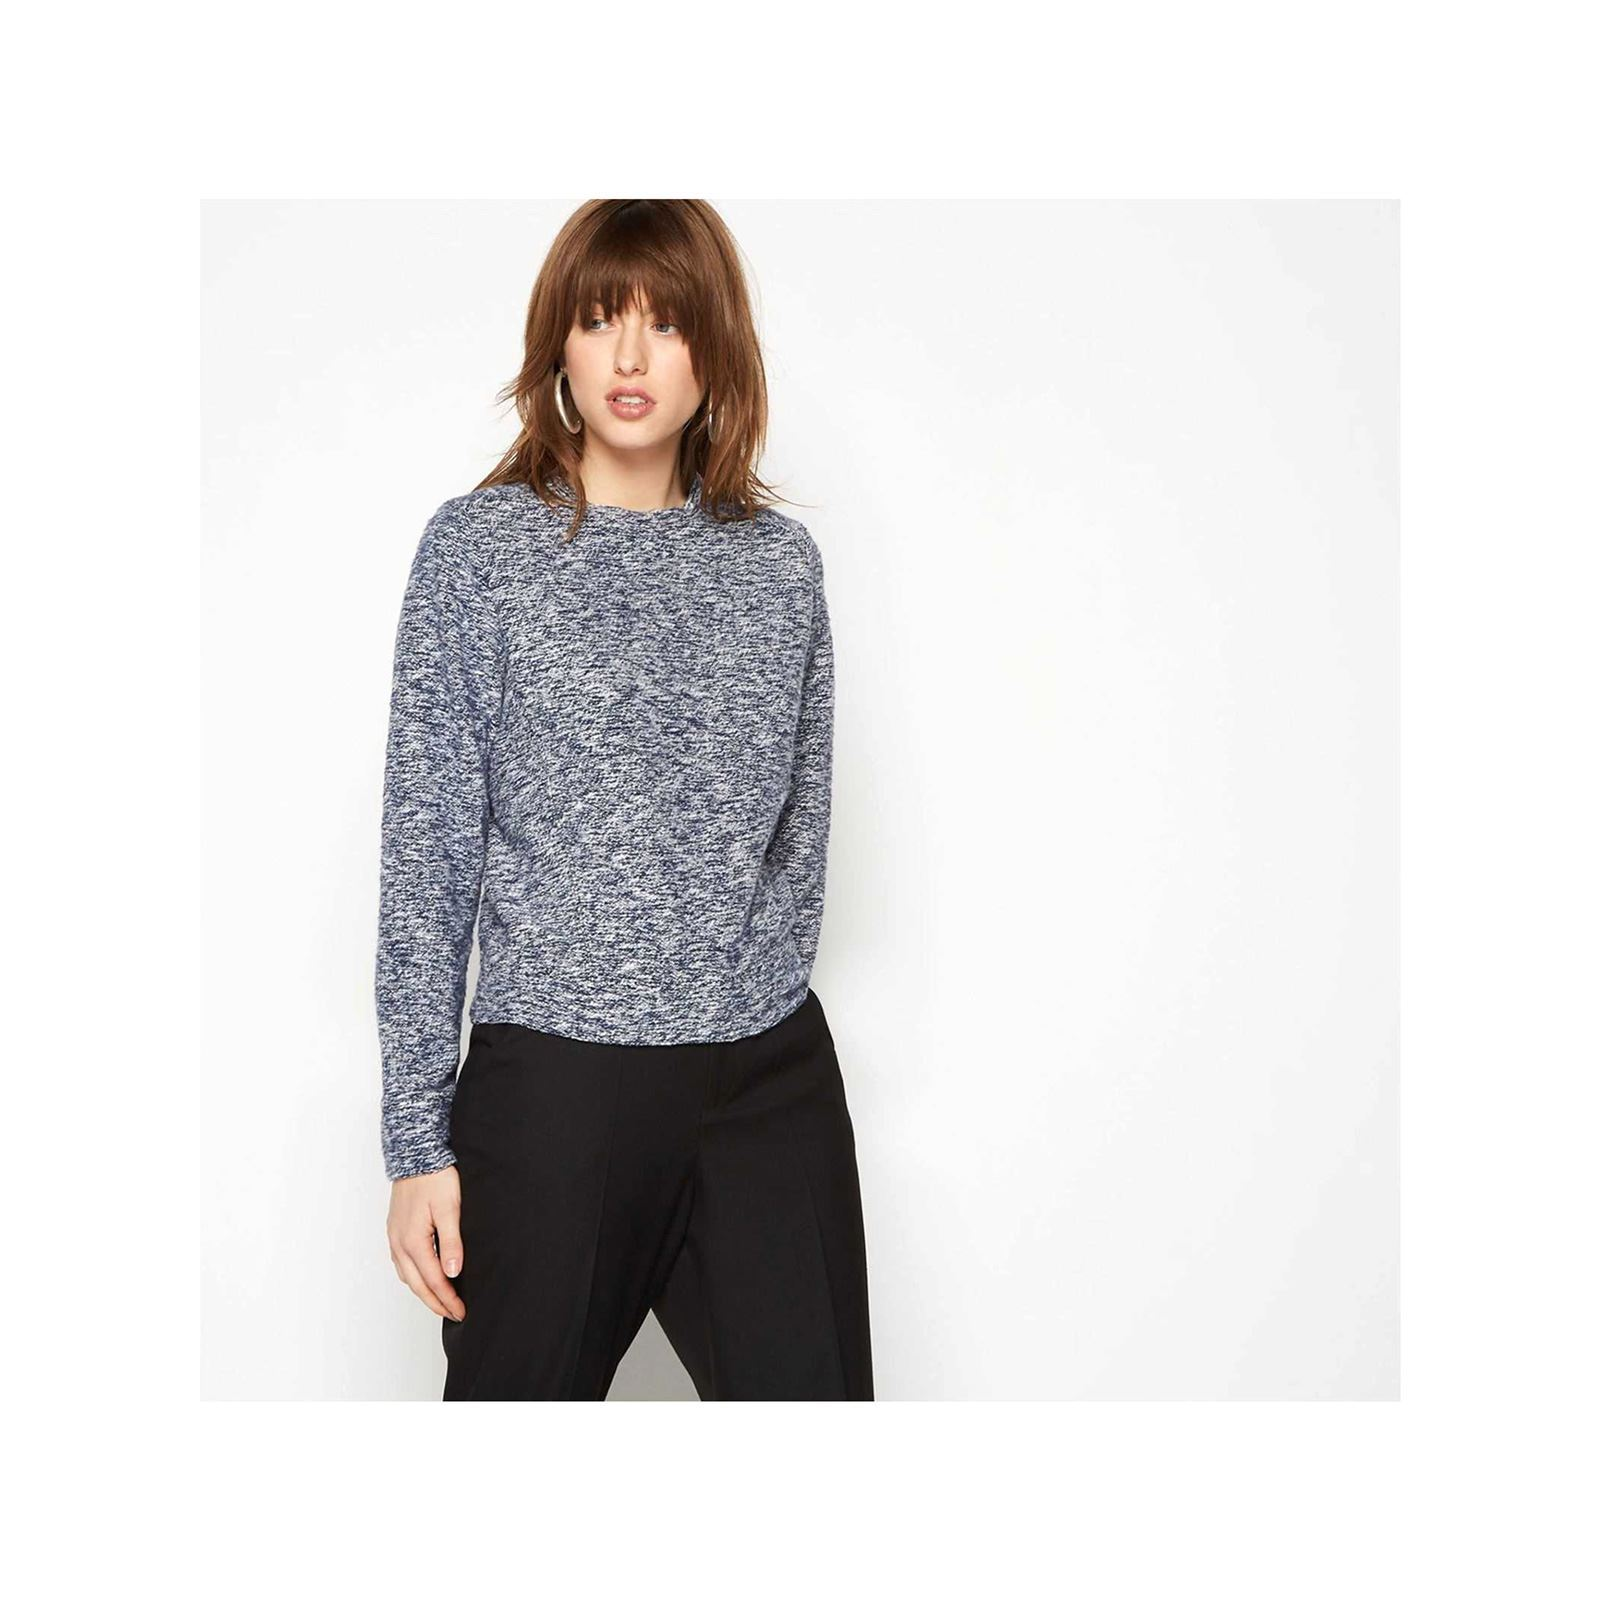 Ardoise Sweat Brandalley En Molleton Monoprix 8Pqt8 3f8a1fb1f50